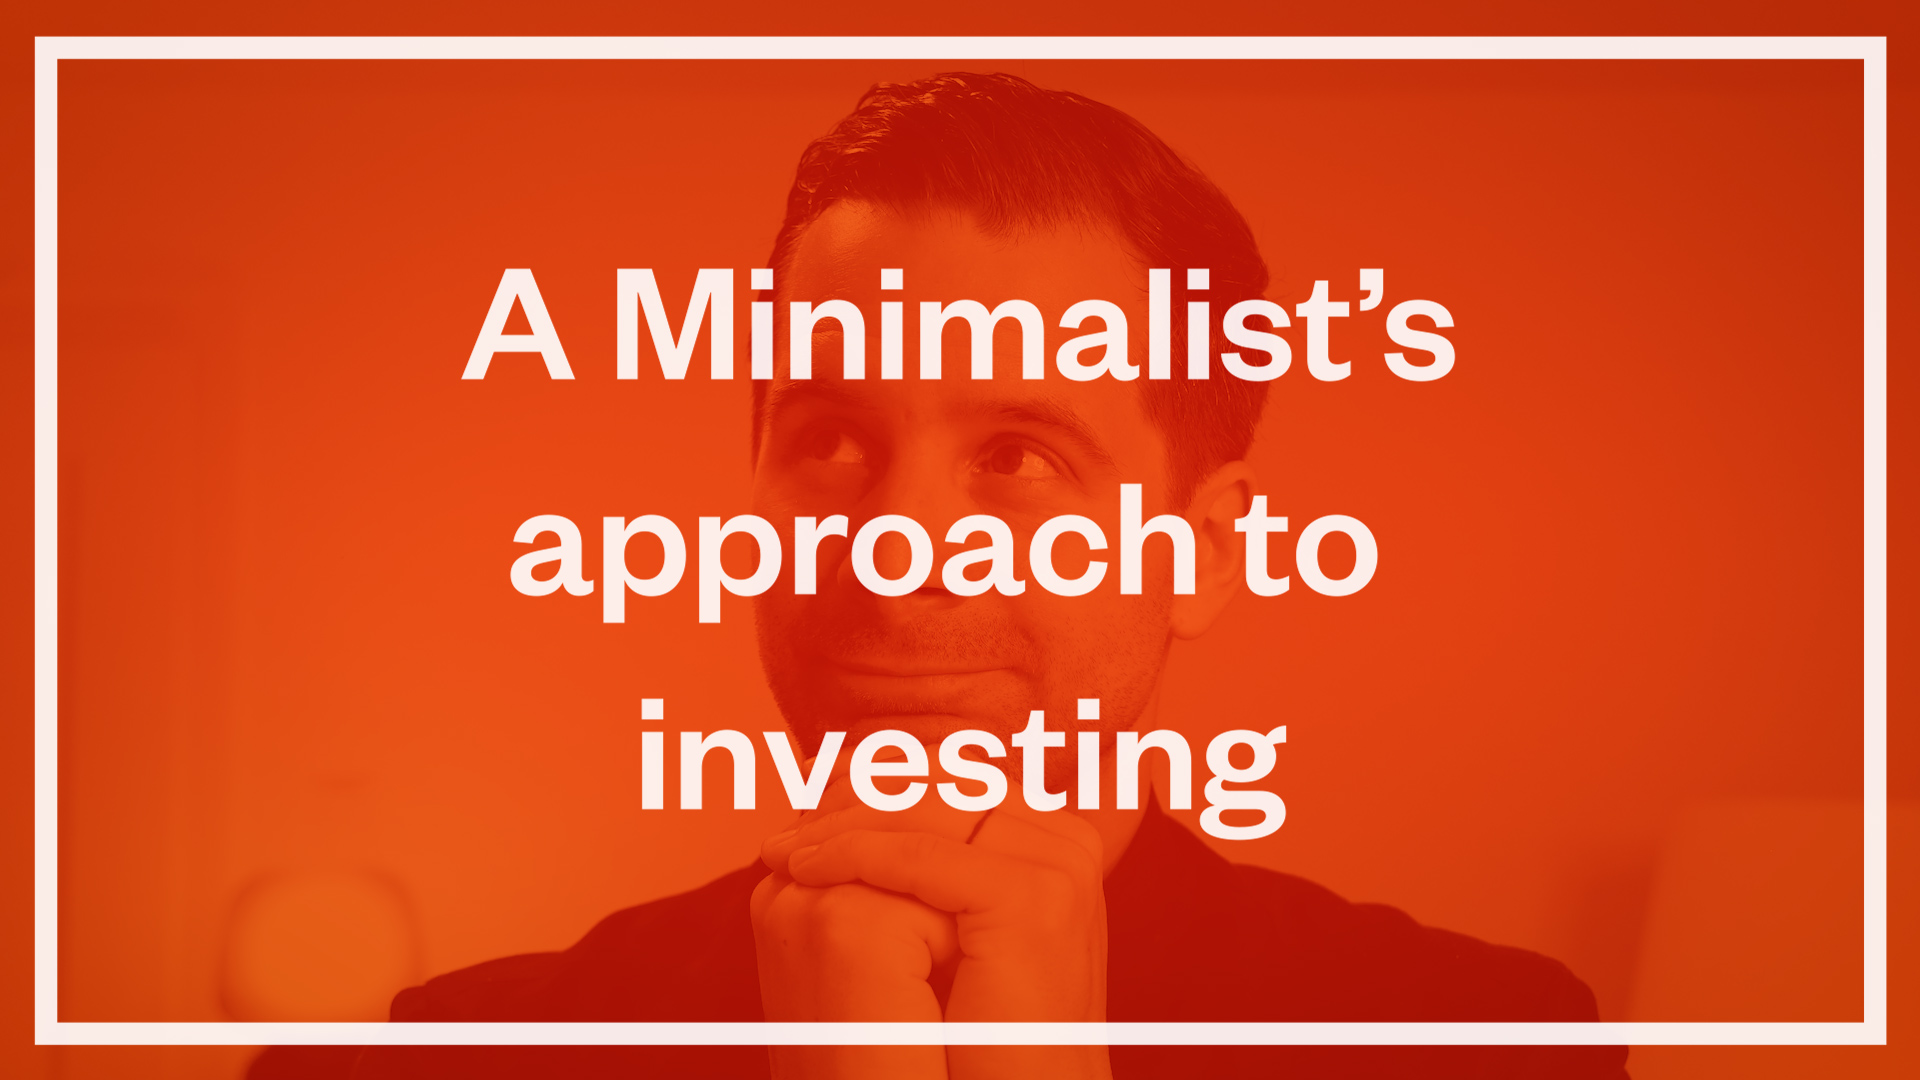 A Minimalist's approach to investing